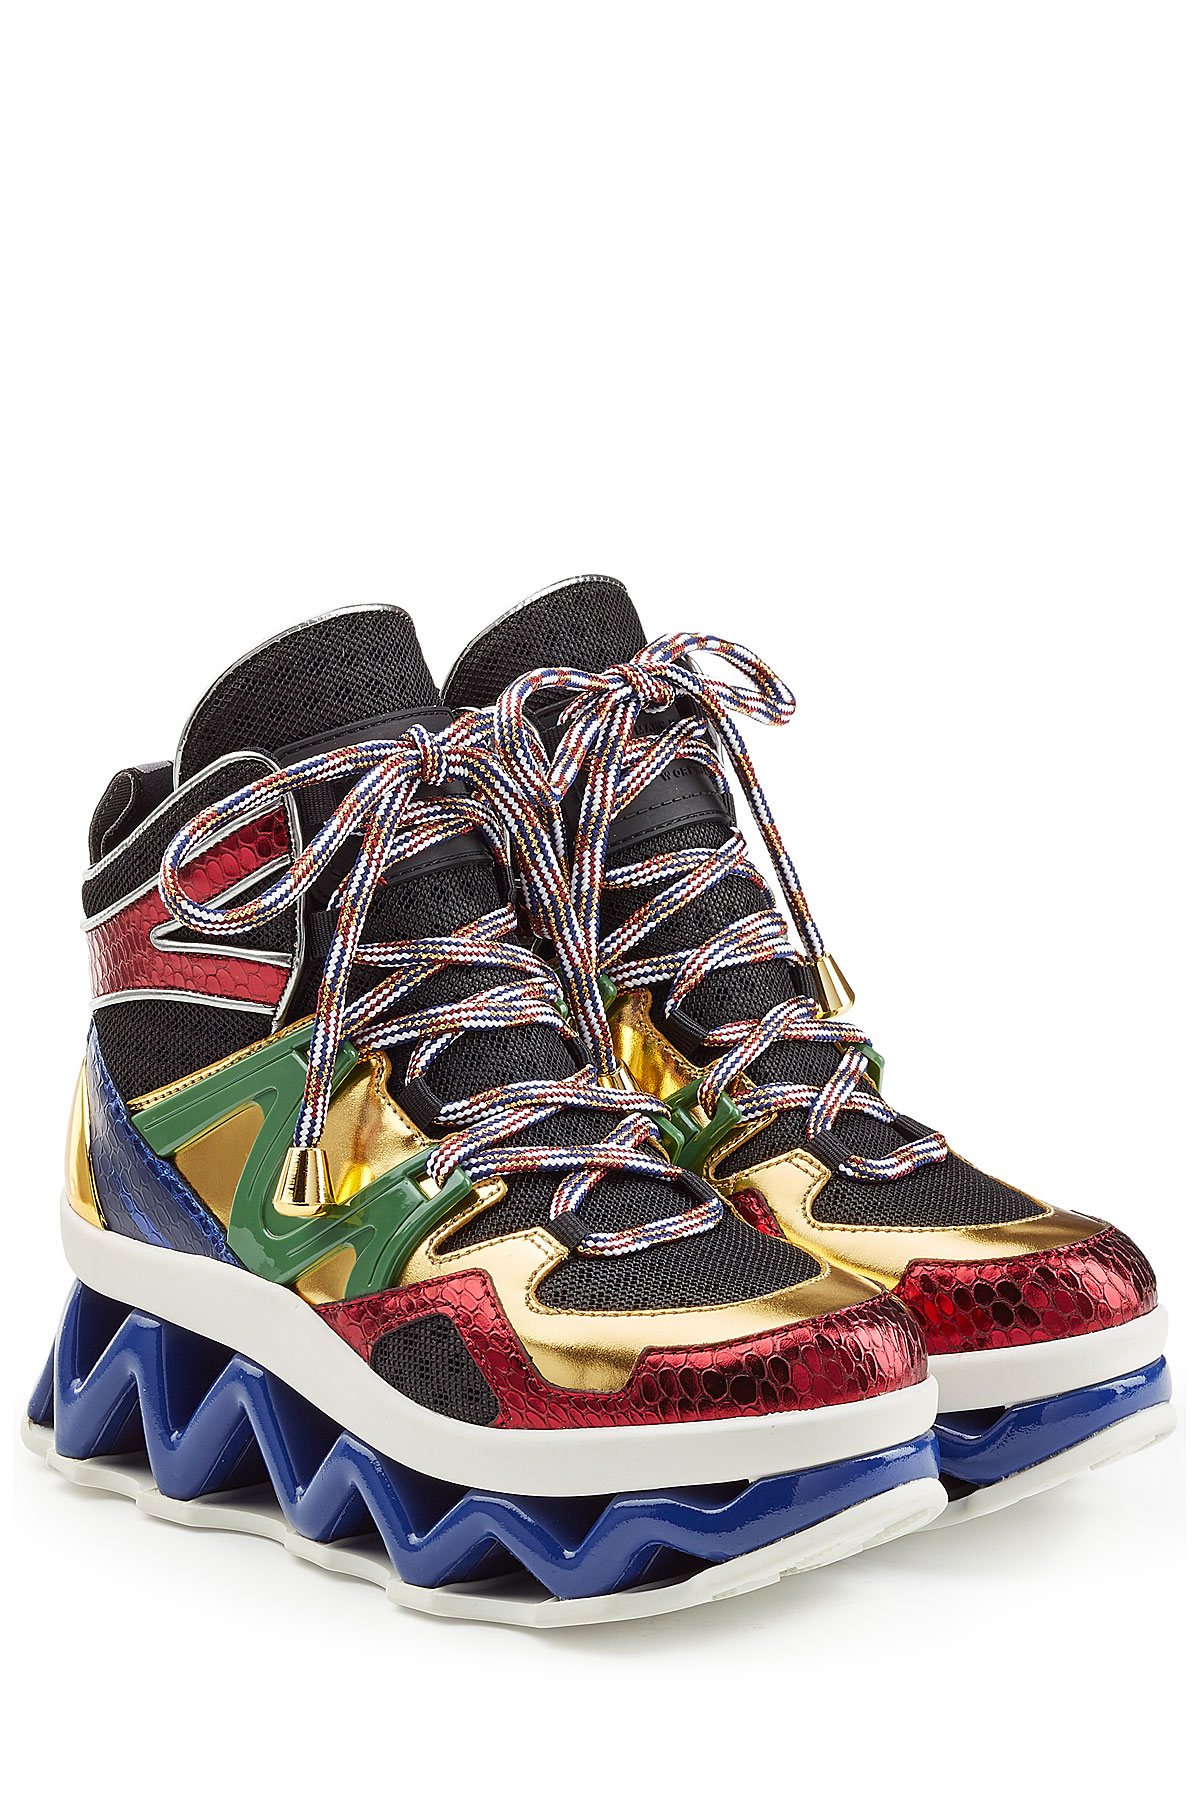 marc by marc jacobs leather and mesh ninja sneakers multicolor in multicolor lyst. Black Bedroom Furniture Sets. Home Design Ideas